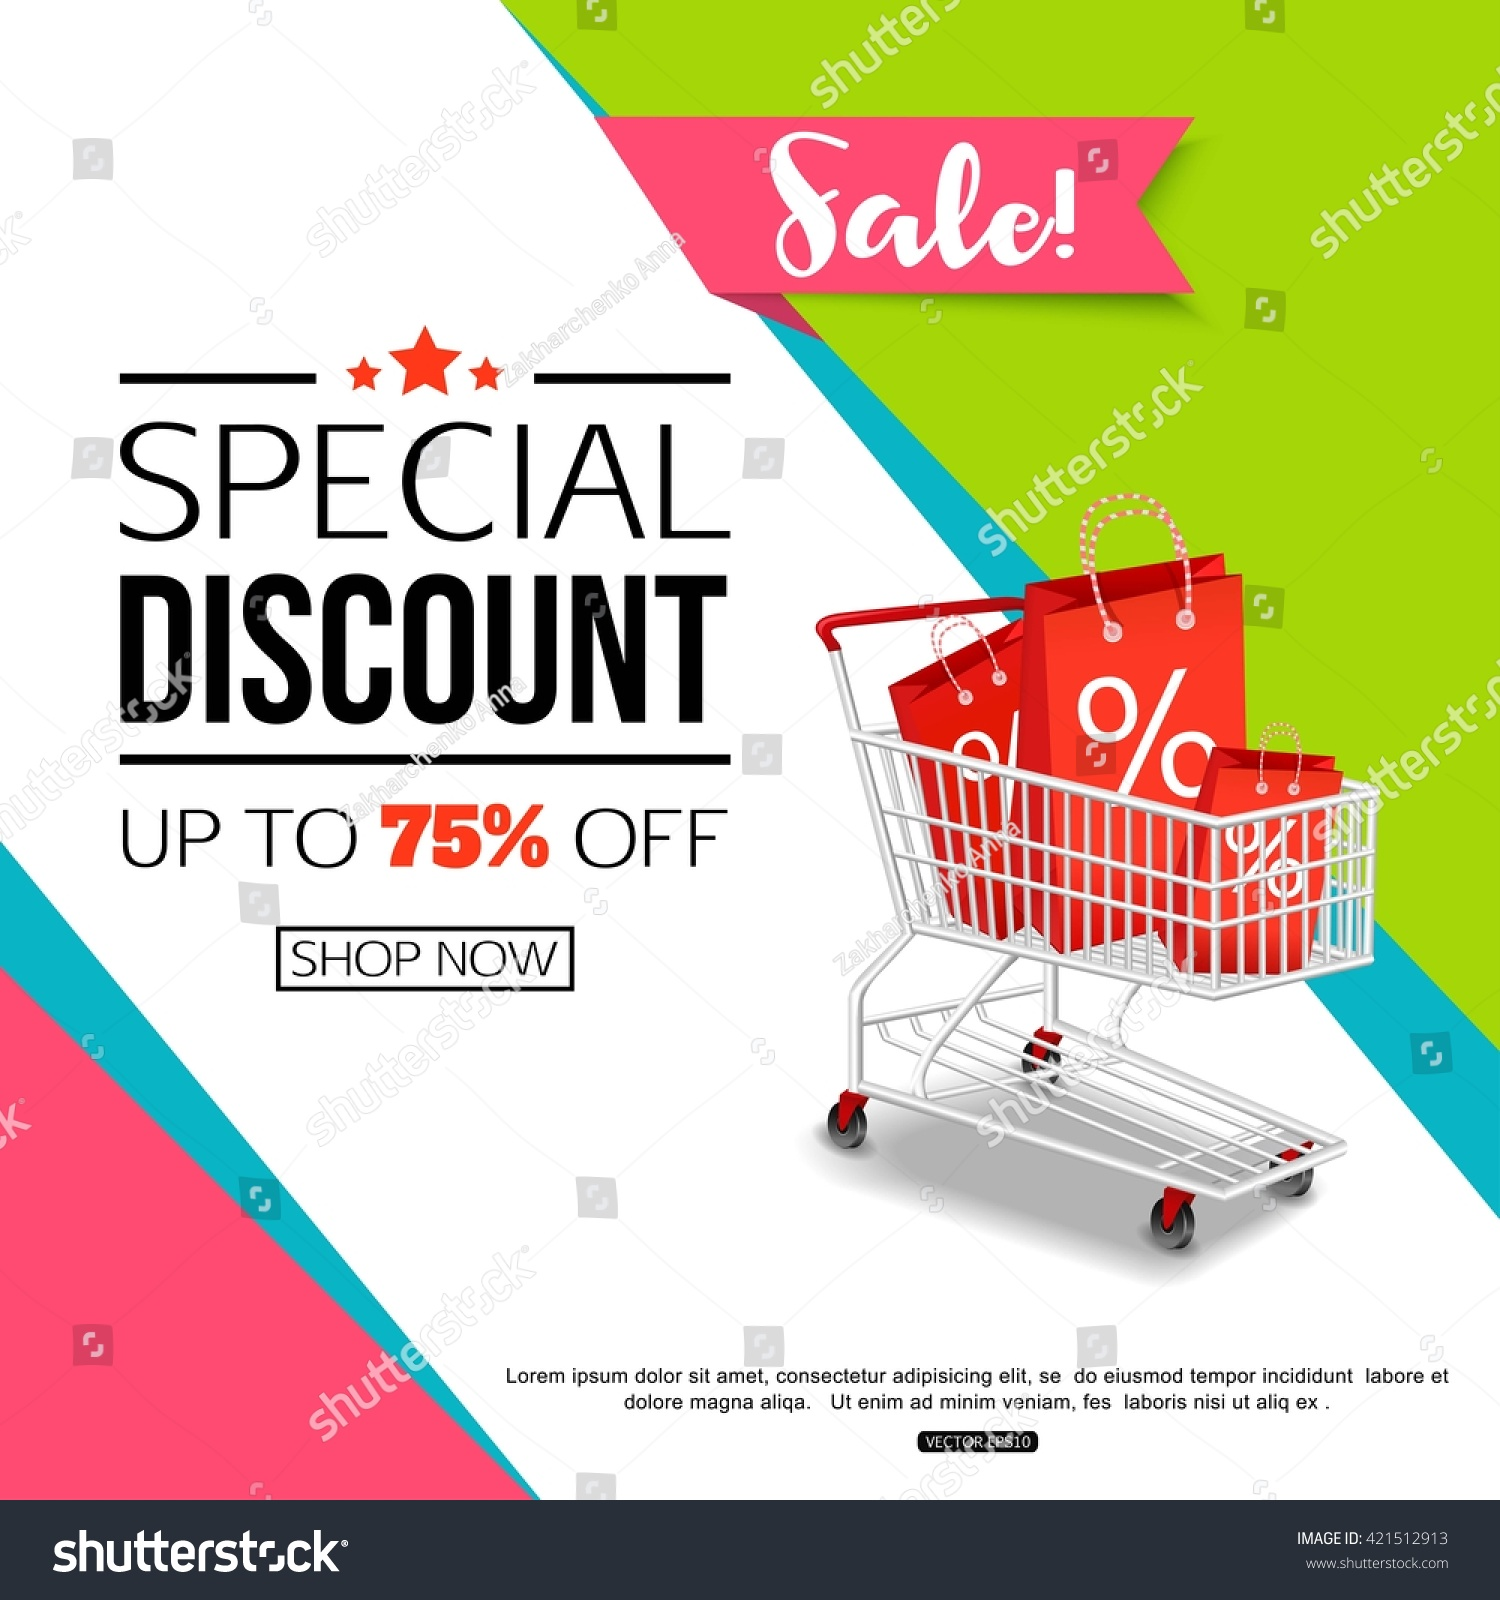 special discount template banner poster stock vector special discount template for banner poster flyer shop online store